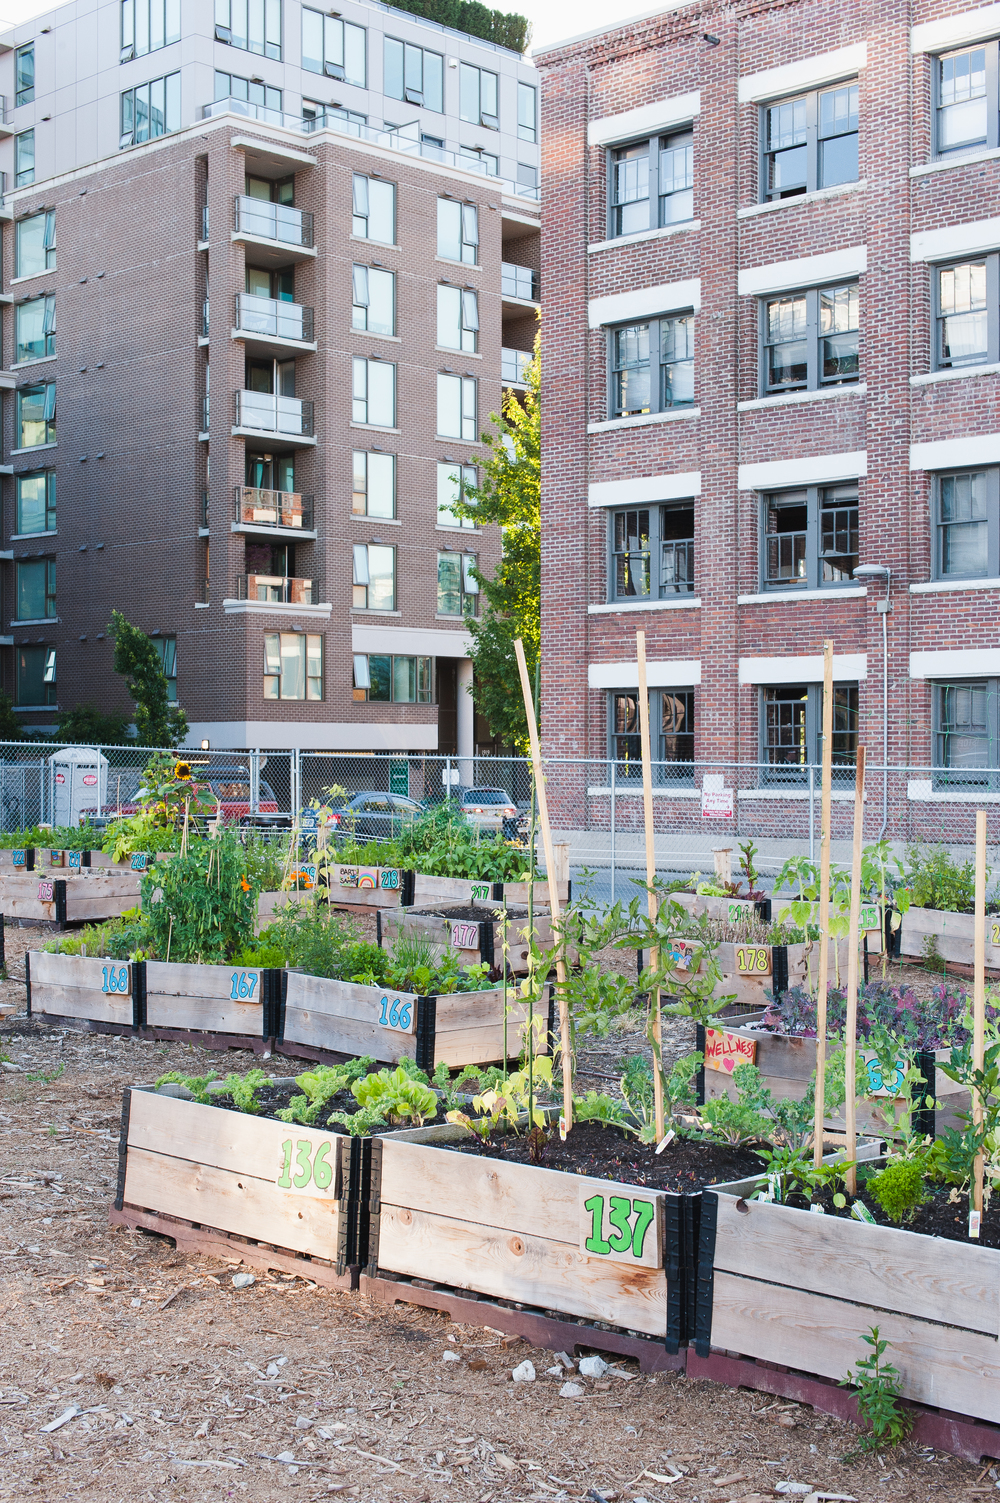 Southeast_False_Creek_Community_Garden_Raised-Beds_6-06.2015.jpg